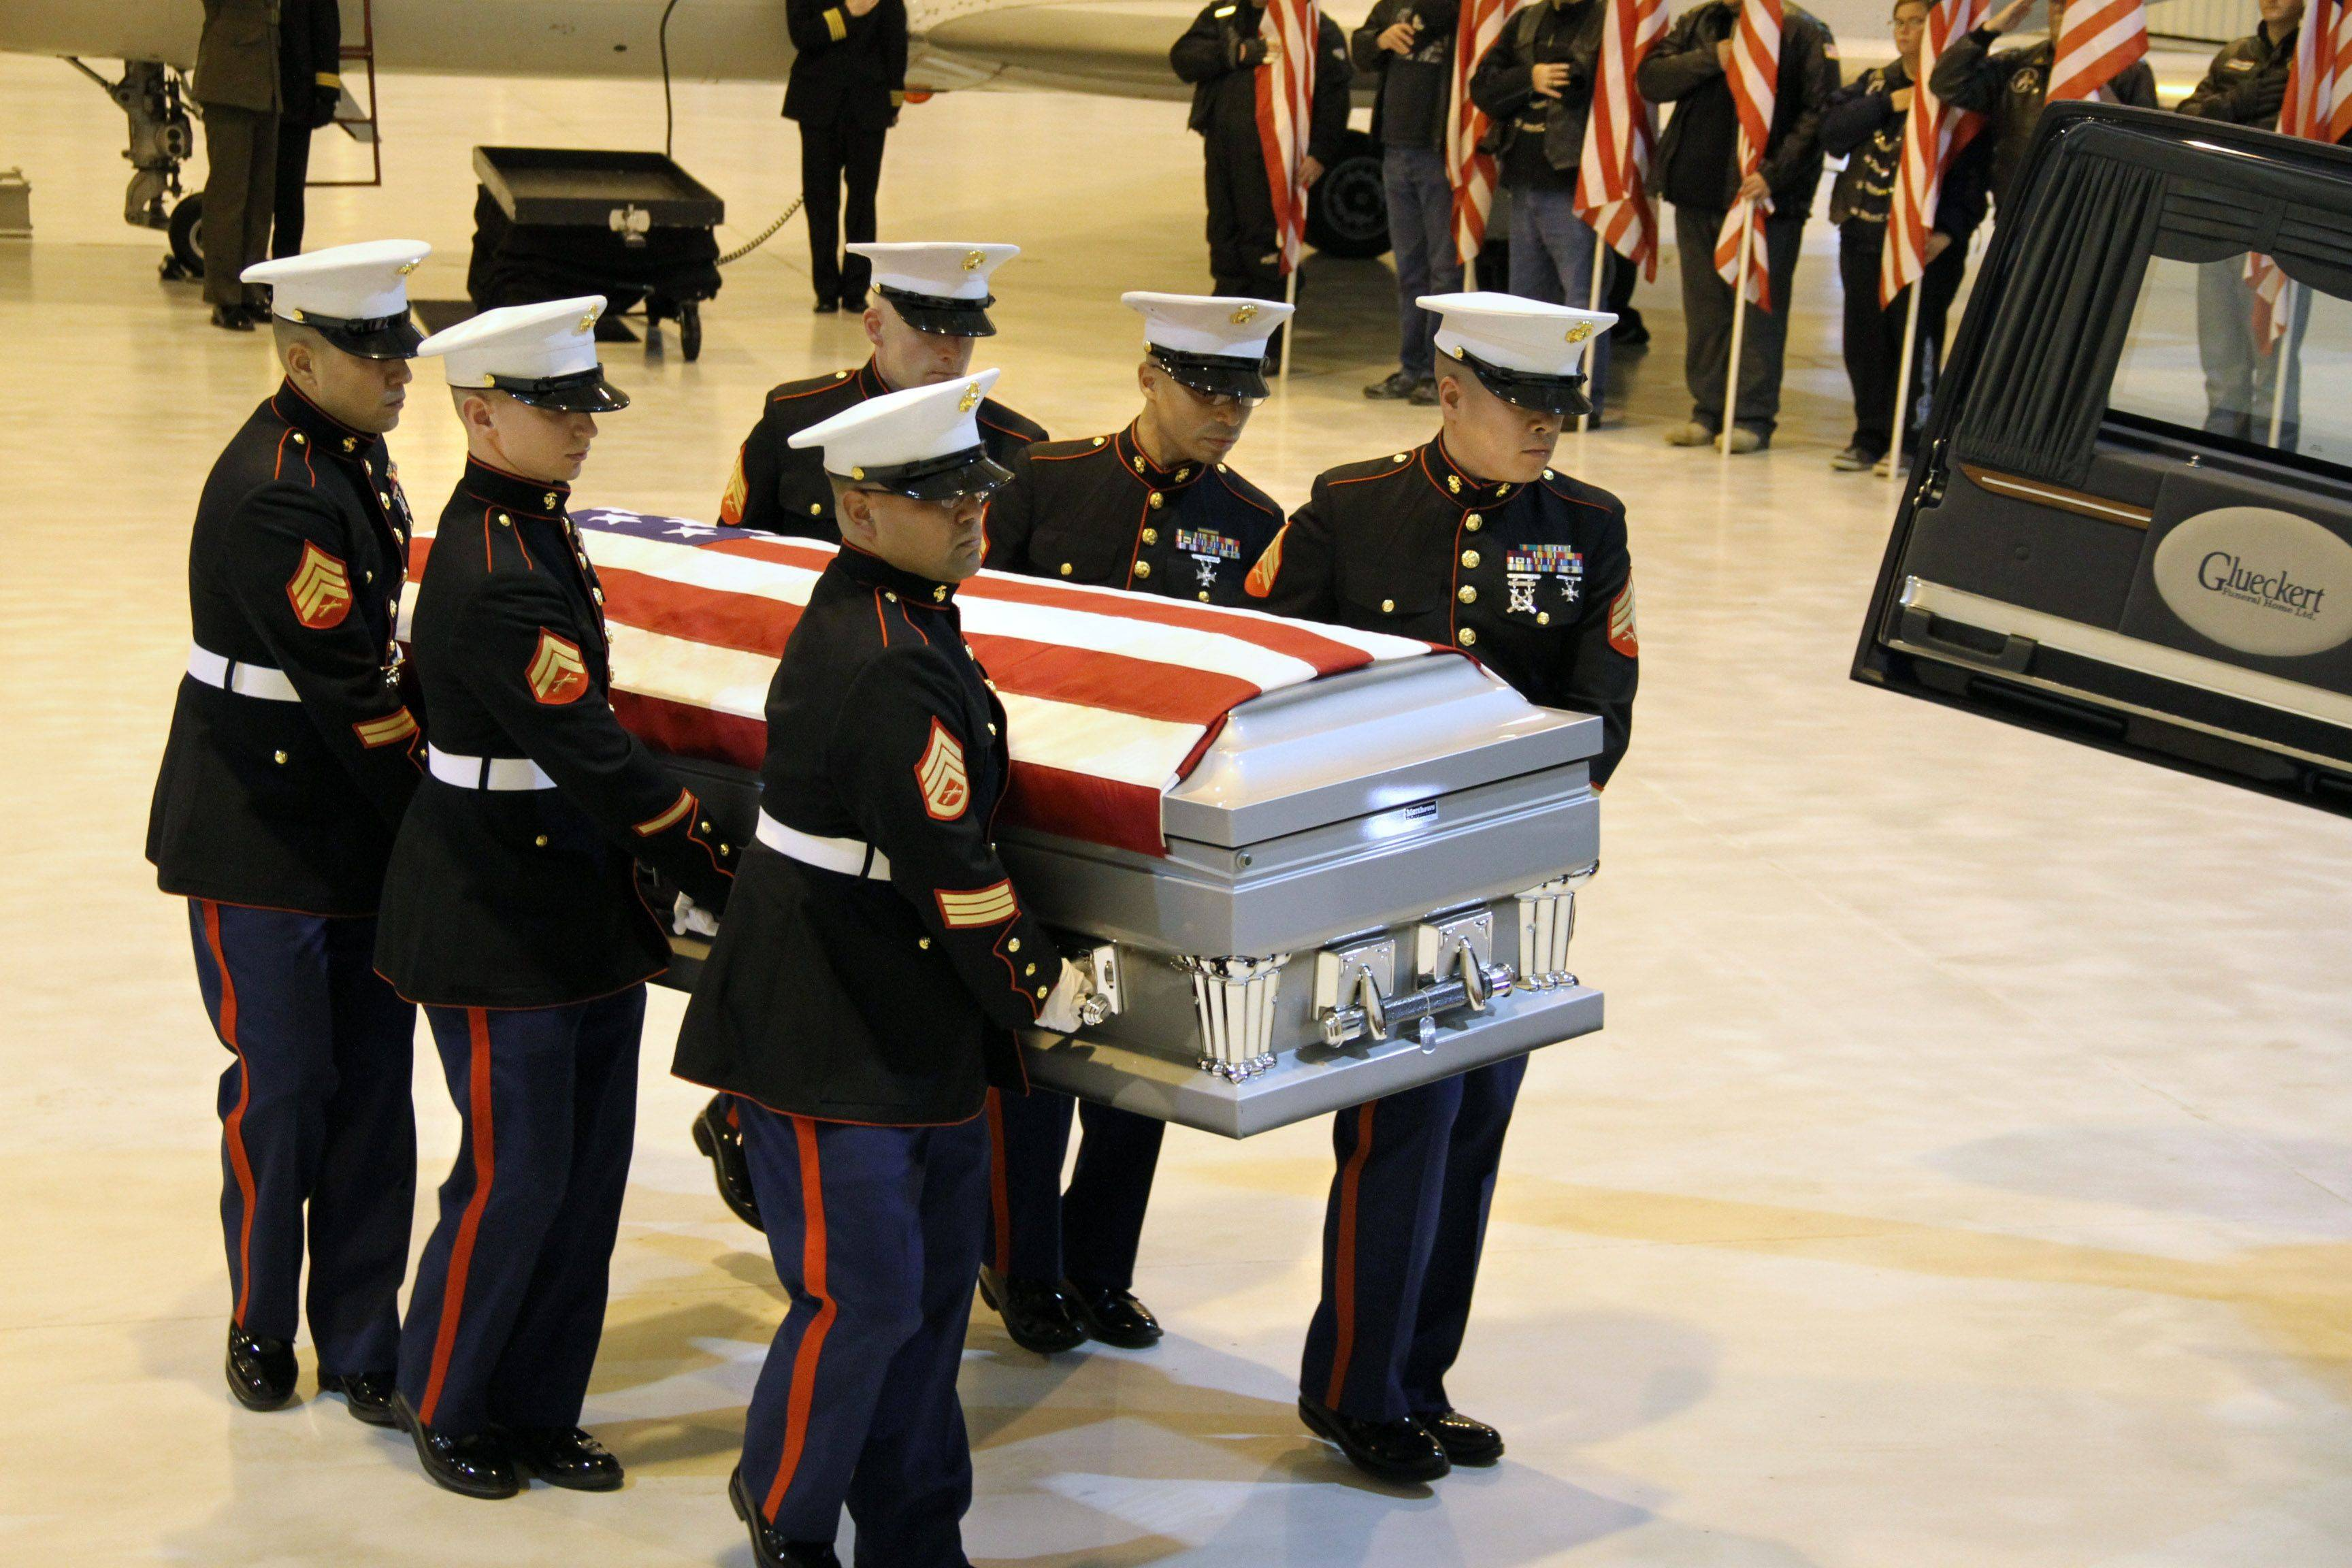 A Marine Corps team carries the flag-draped casket of Marine Lance Cpl. James Stack, 20, of Arlington Heights at Chicago Executive Airport in Wheeling .